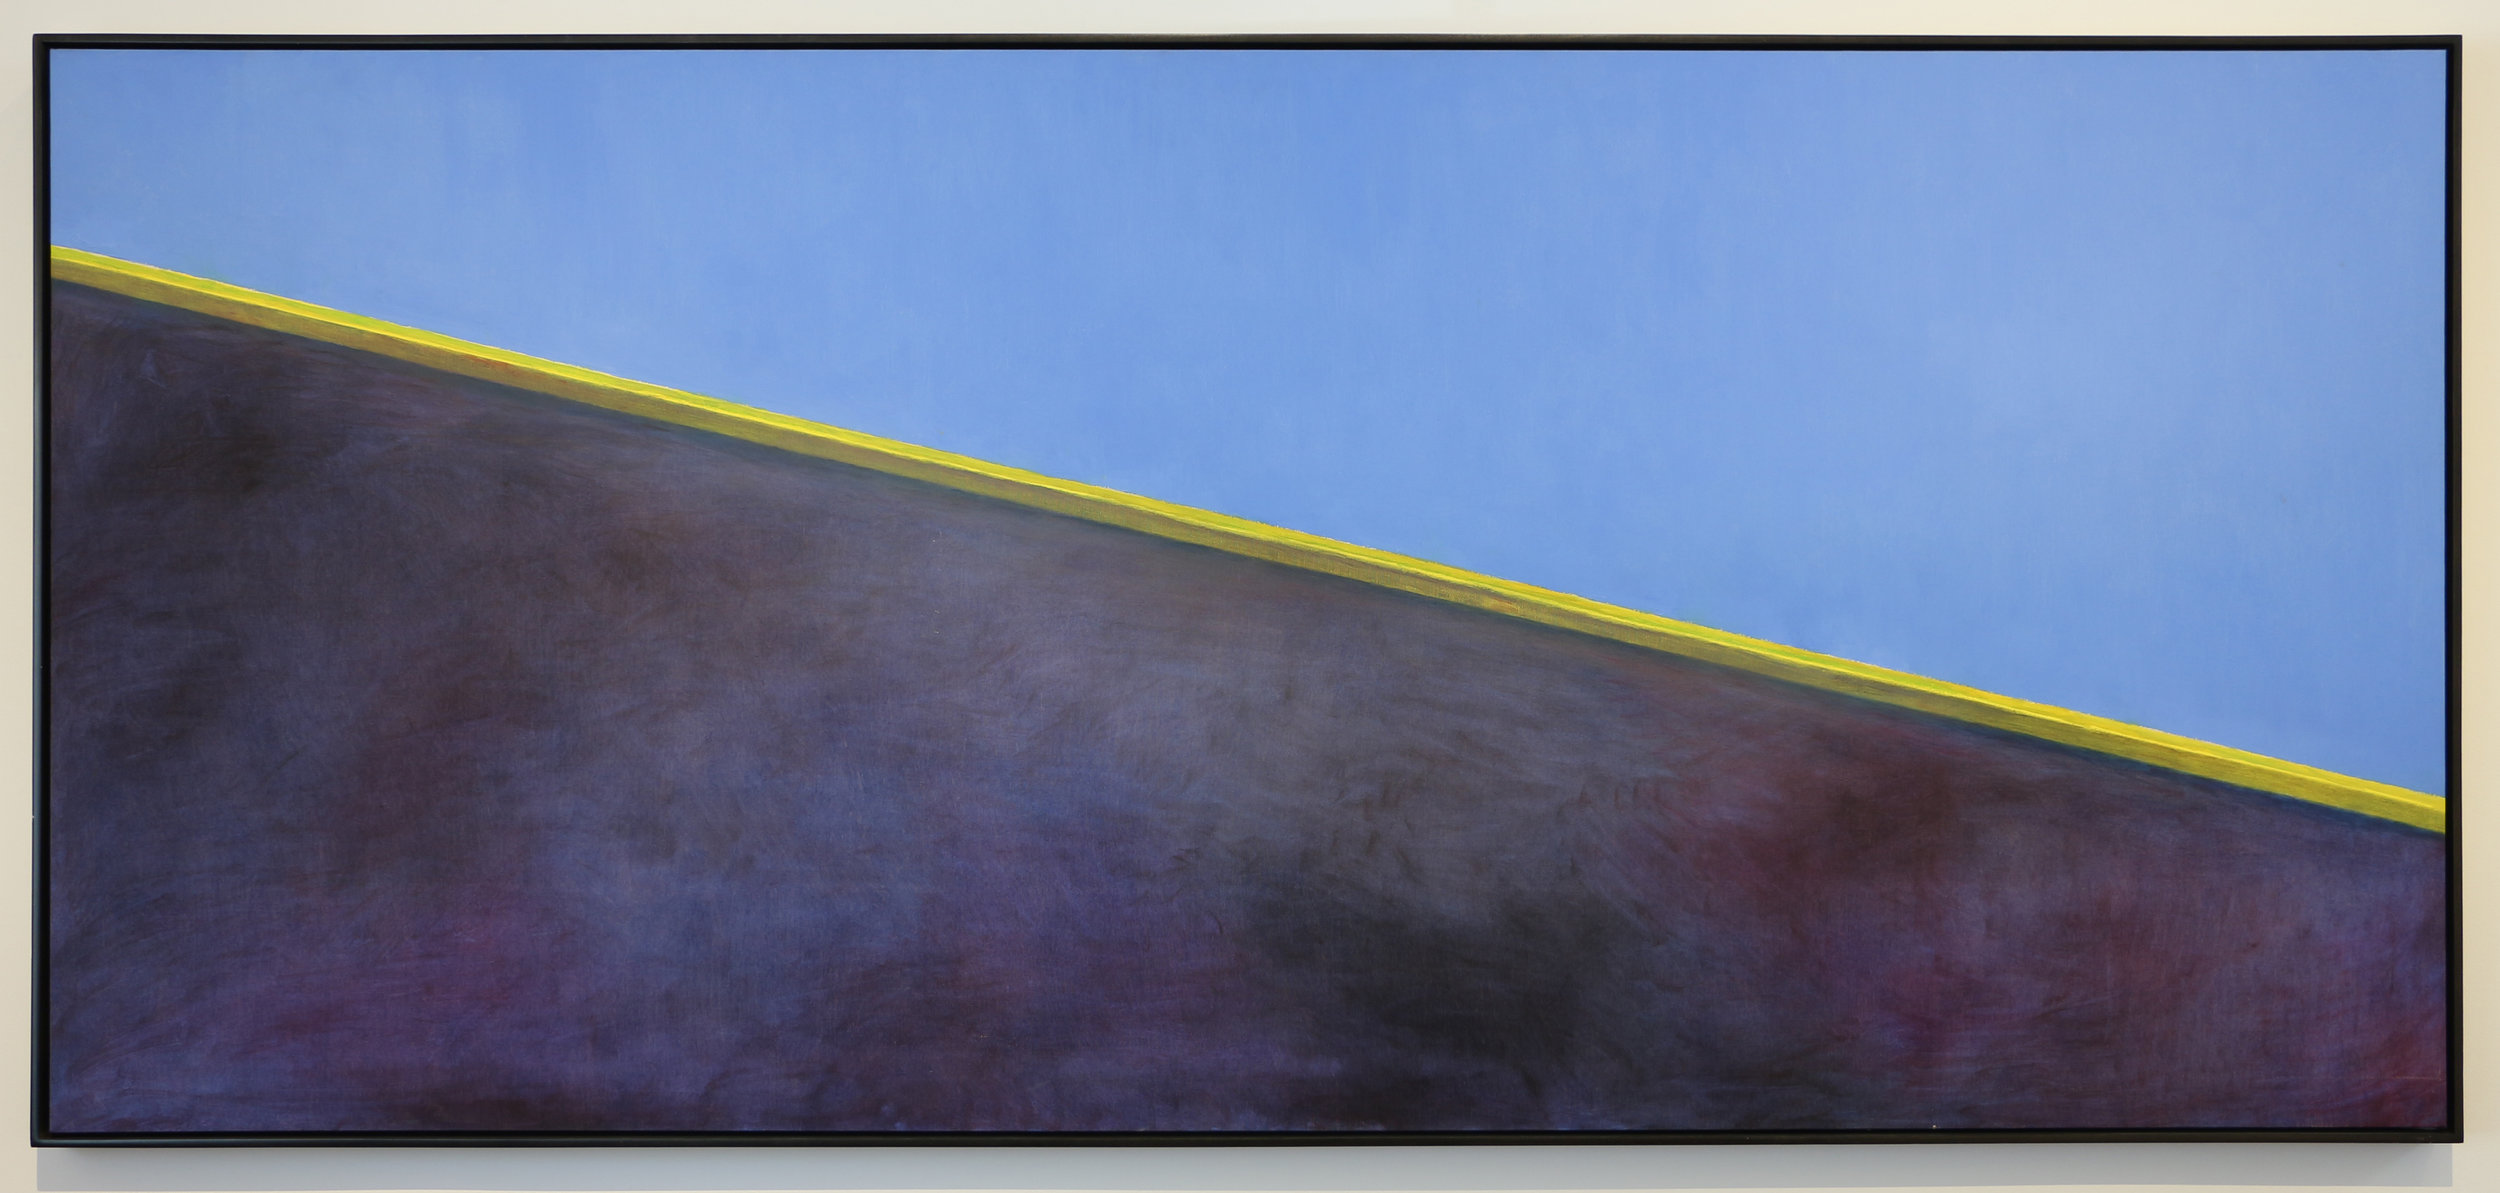 Frederick Wight  (1902-1986)  Day, Night, Summer, Winter , 1979 oil on canvas 43 x 95 inches; 109.2 x 241.3 centimeters